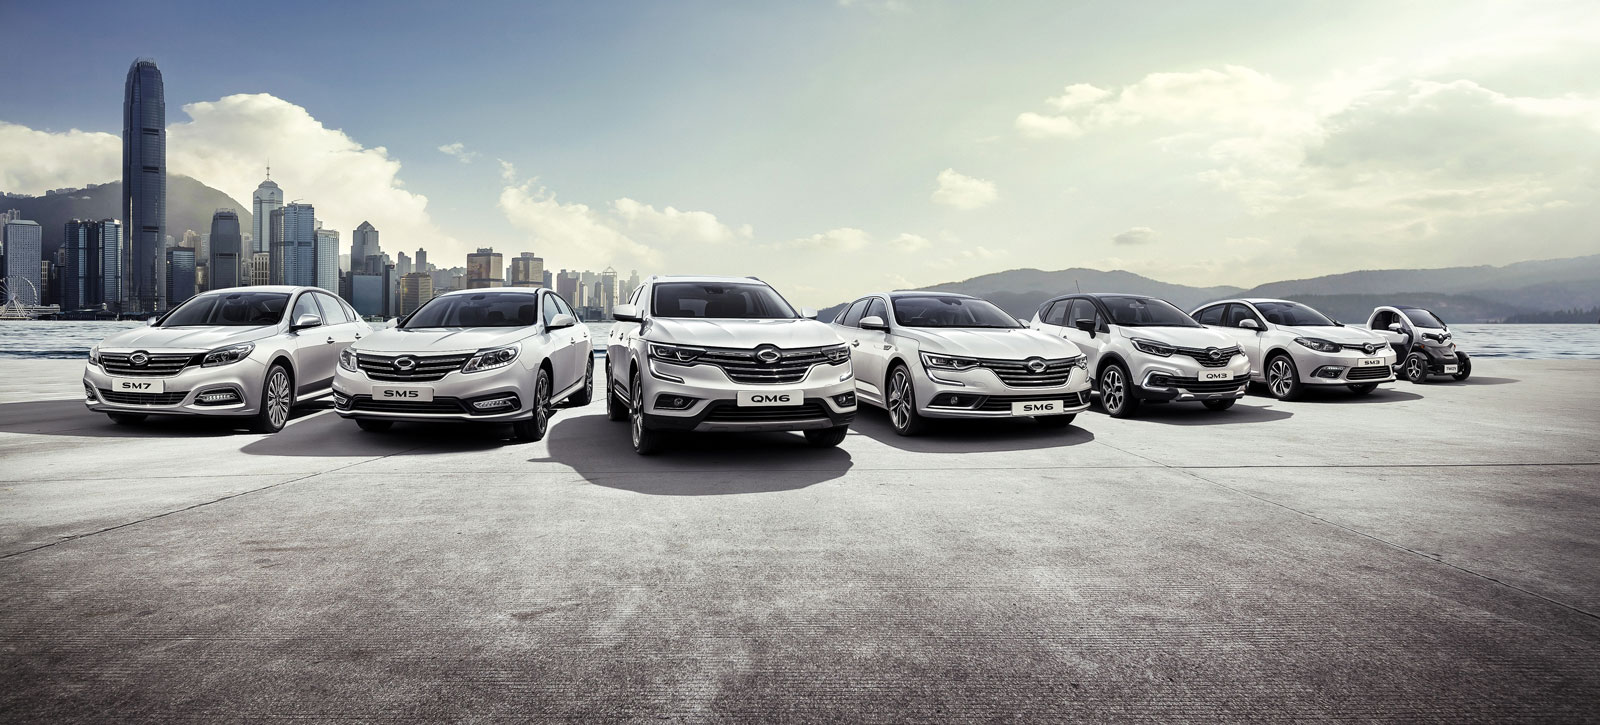 Renault Samsung Motors - Know more